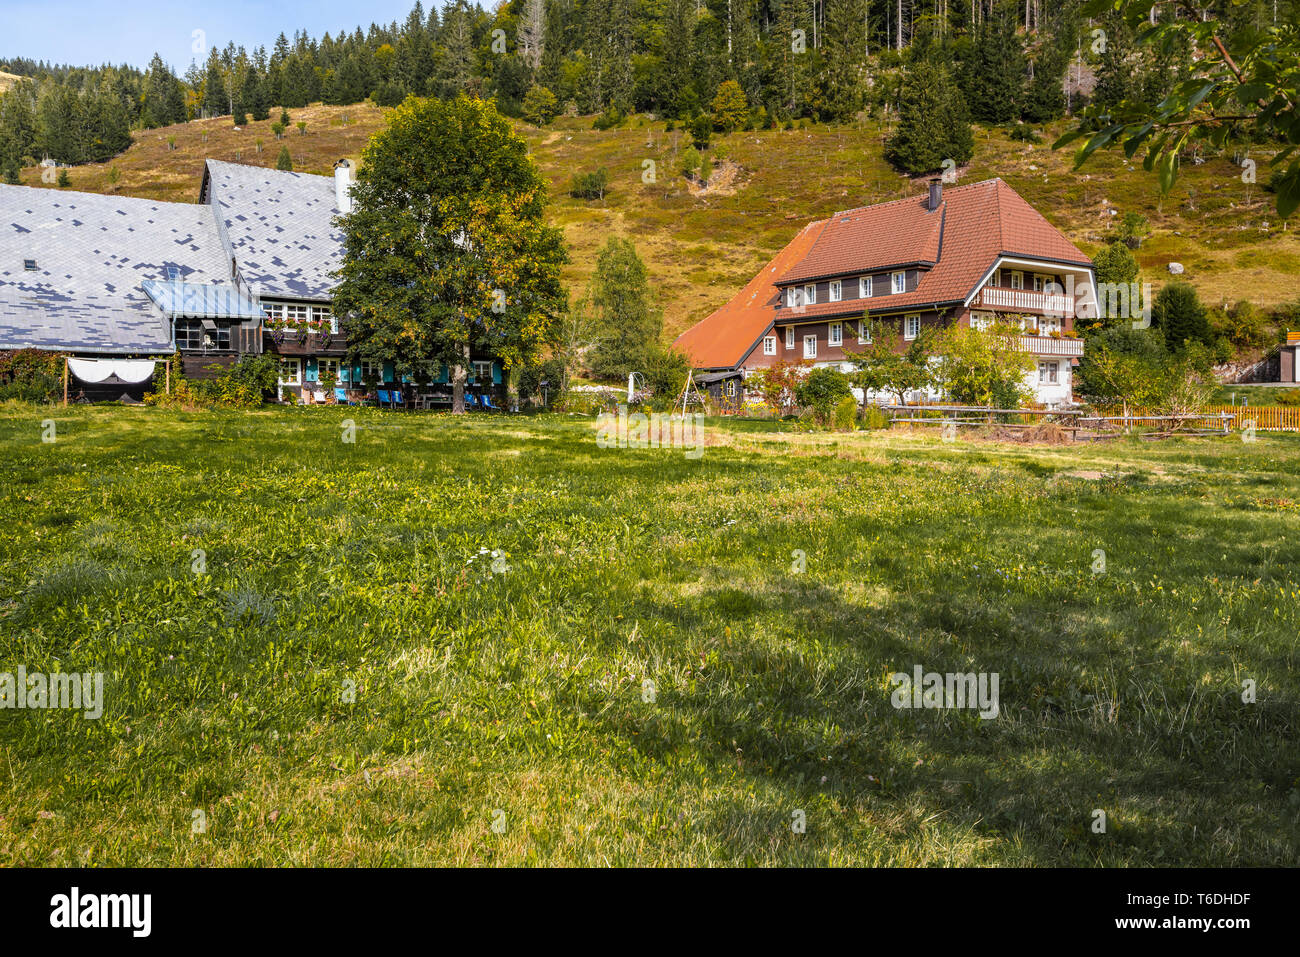 Black Forest houses and wooded hills in Menzenschwand, Black Forest, Germany, farm building with adjoining living area, borough of St. Blasien - Stock Image